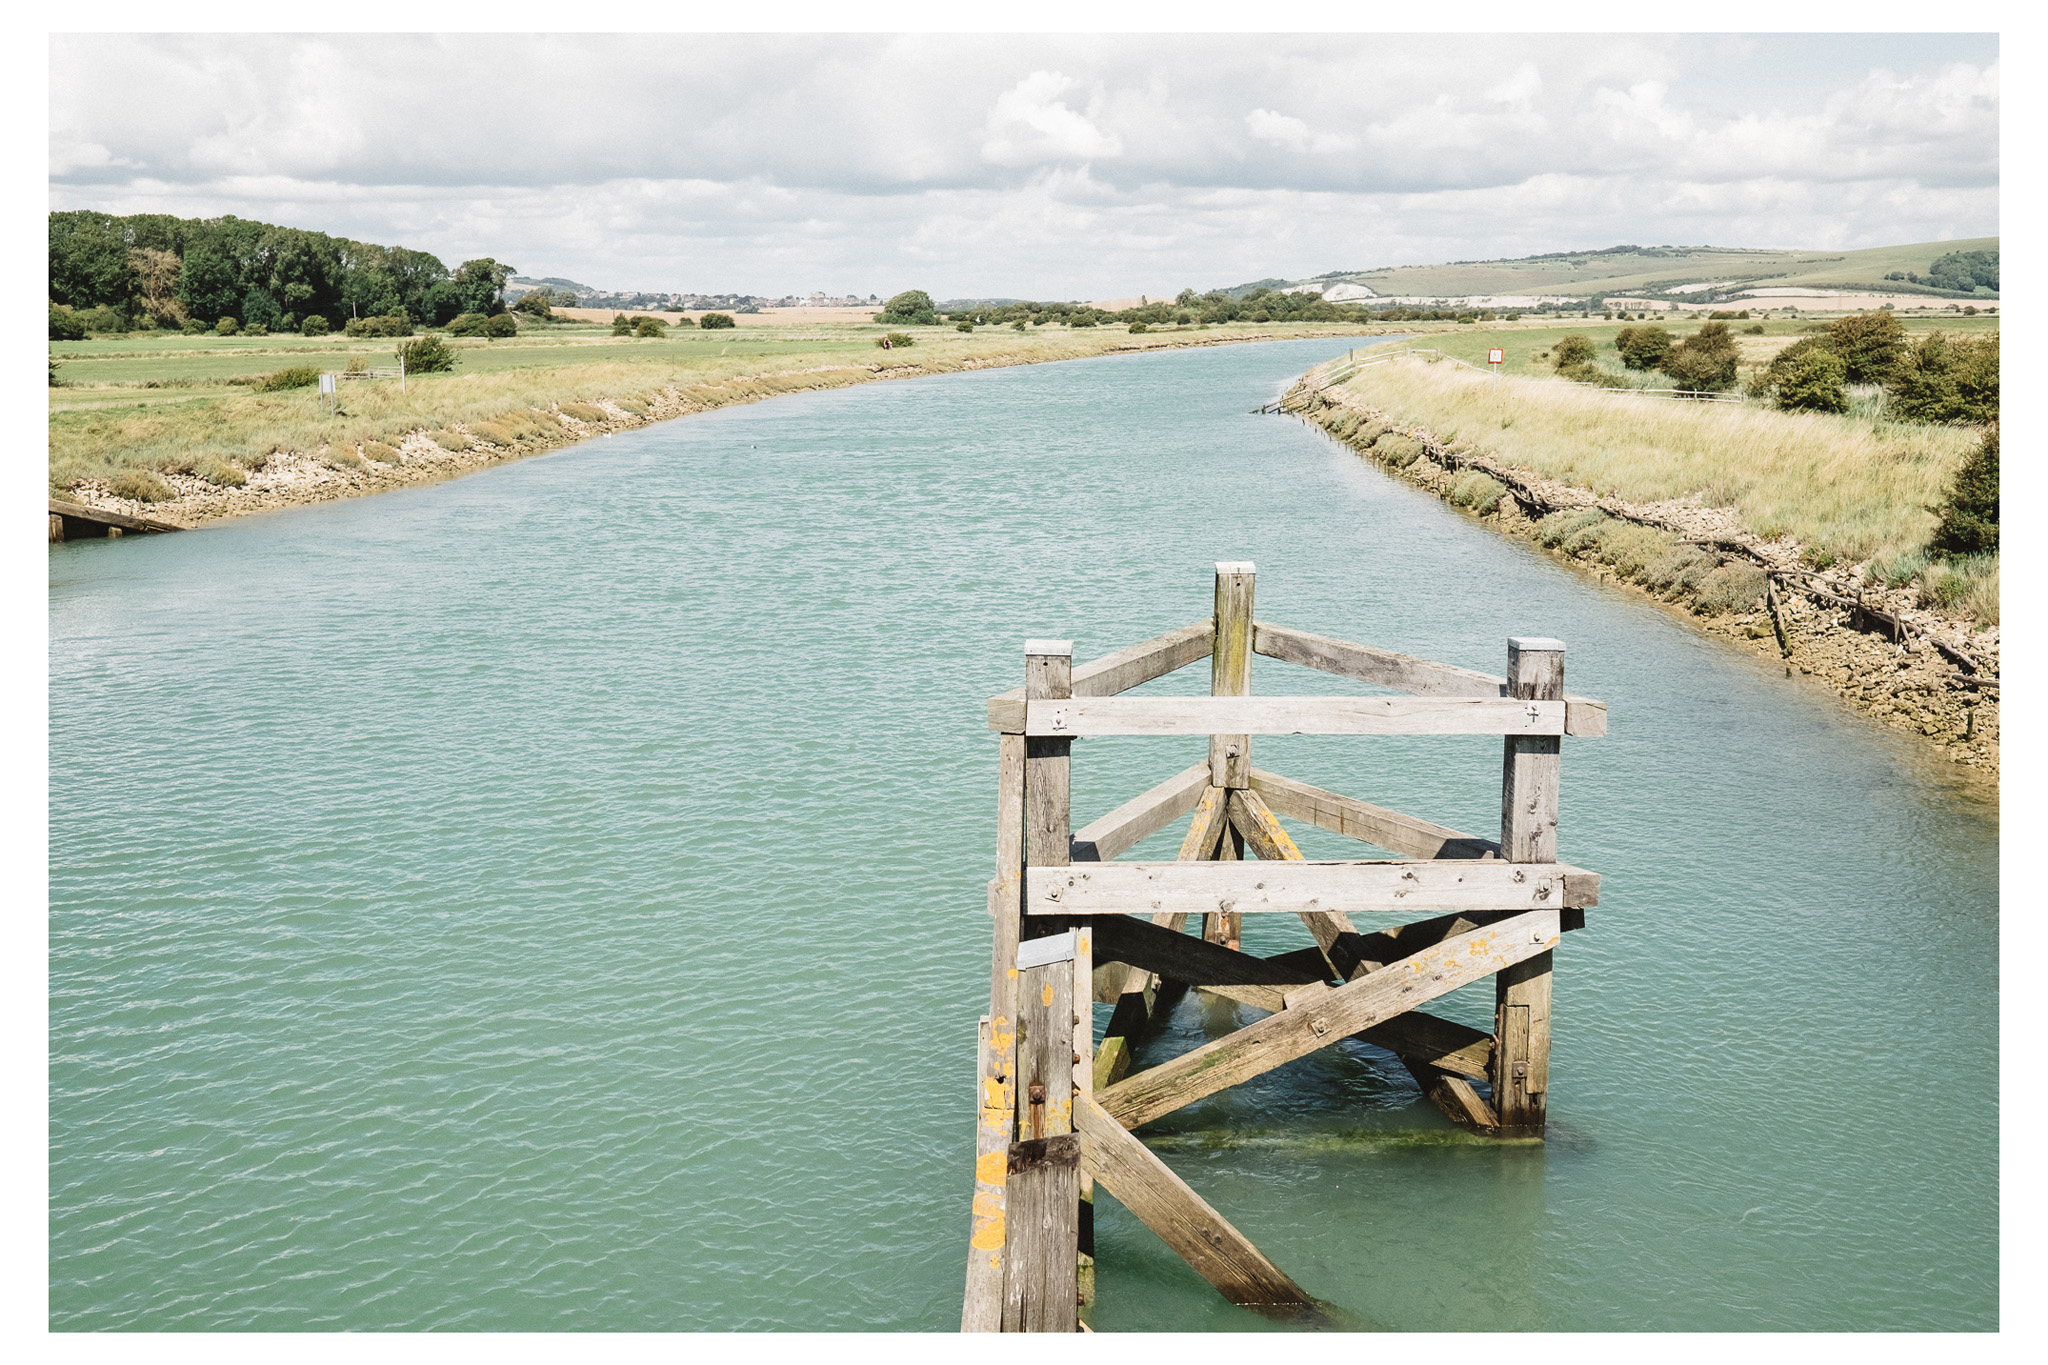 Lewes to Southease is an easy to moderate walk along the River Ouse in East Sussex. Retreat is a Sussex based blog focused on natural living.